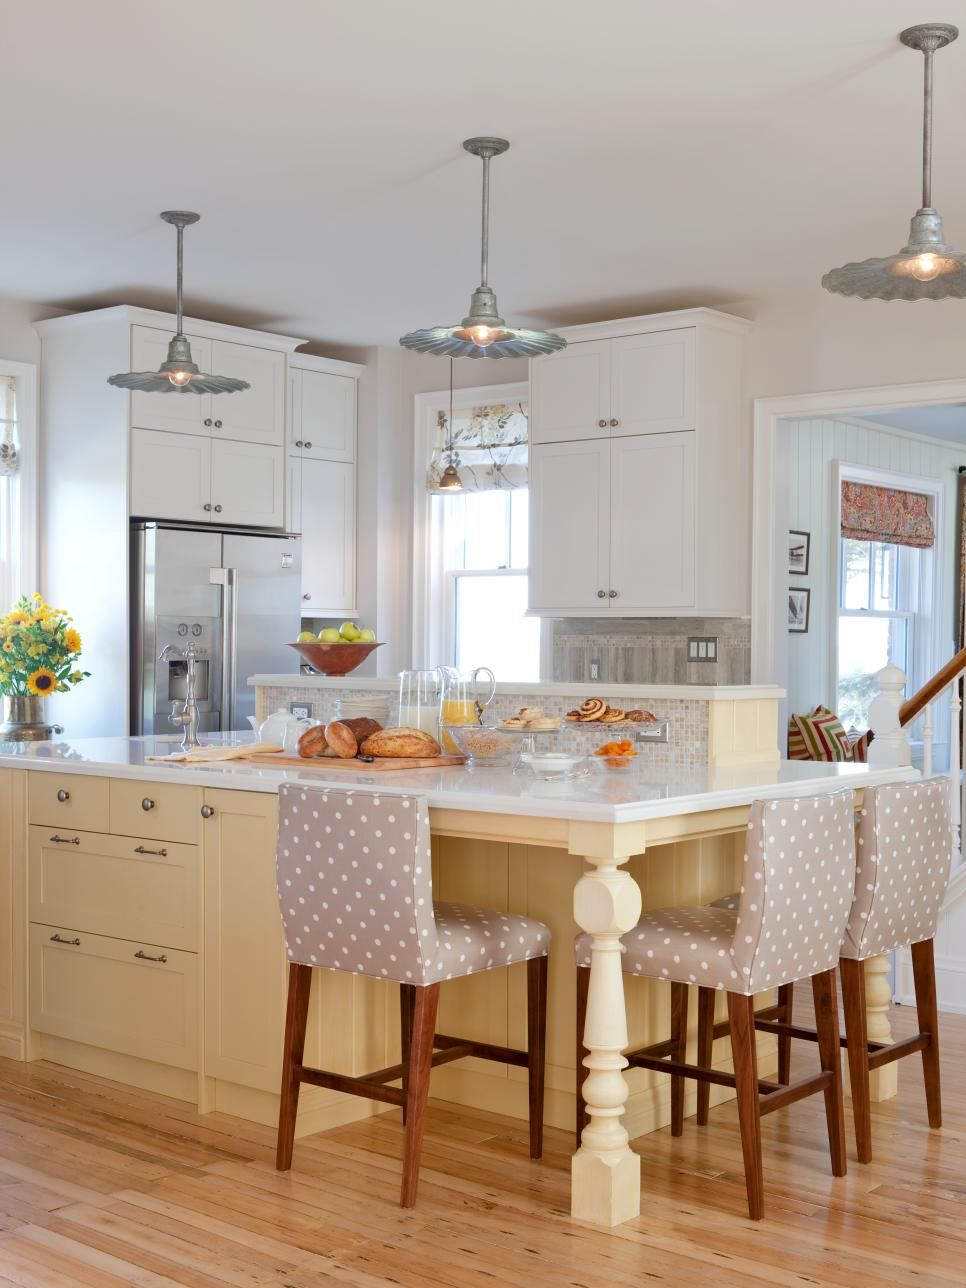 Sarah richardson farmhouse kitchen - To Cozy Up Her Farmhouse Kitchen Designer Sarah Richardson Painted The Massive Island In A